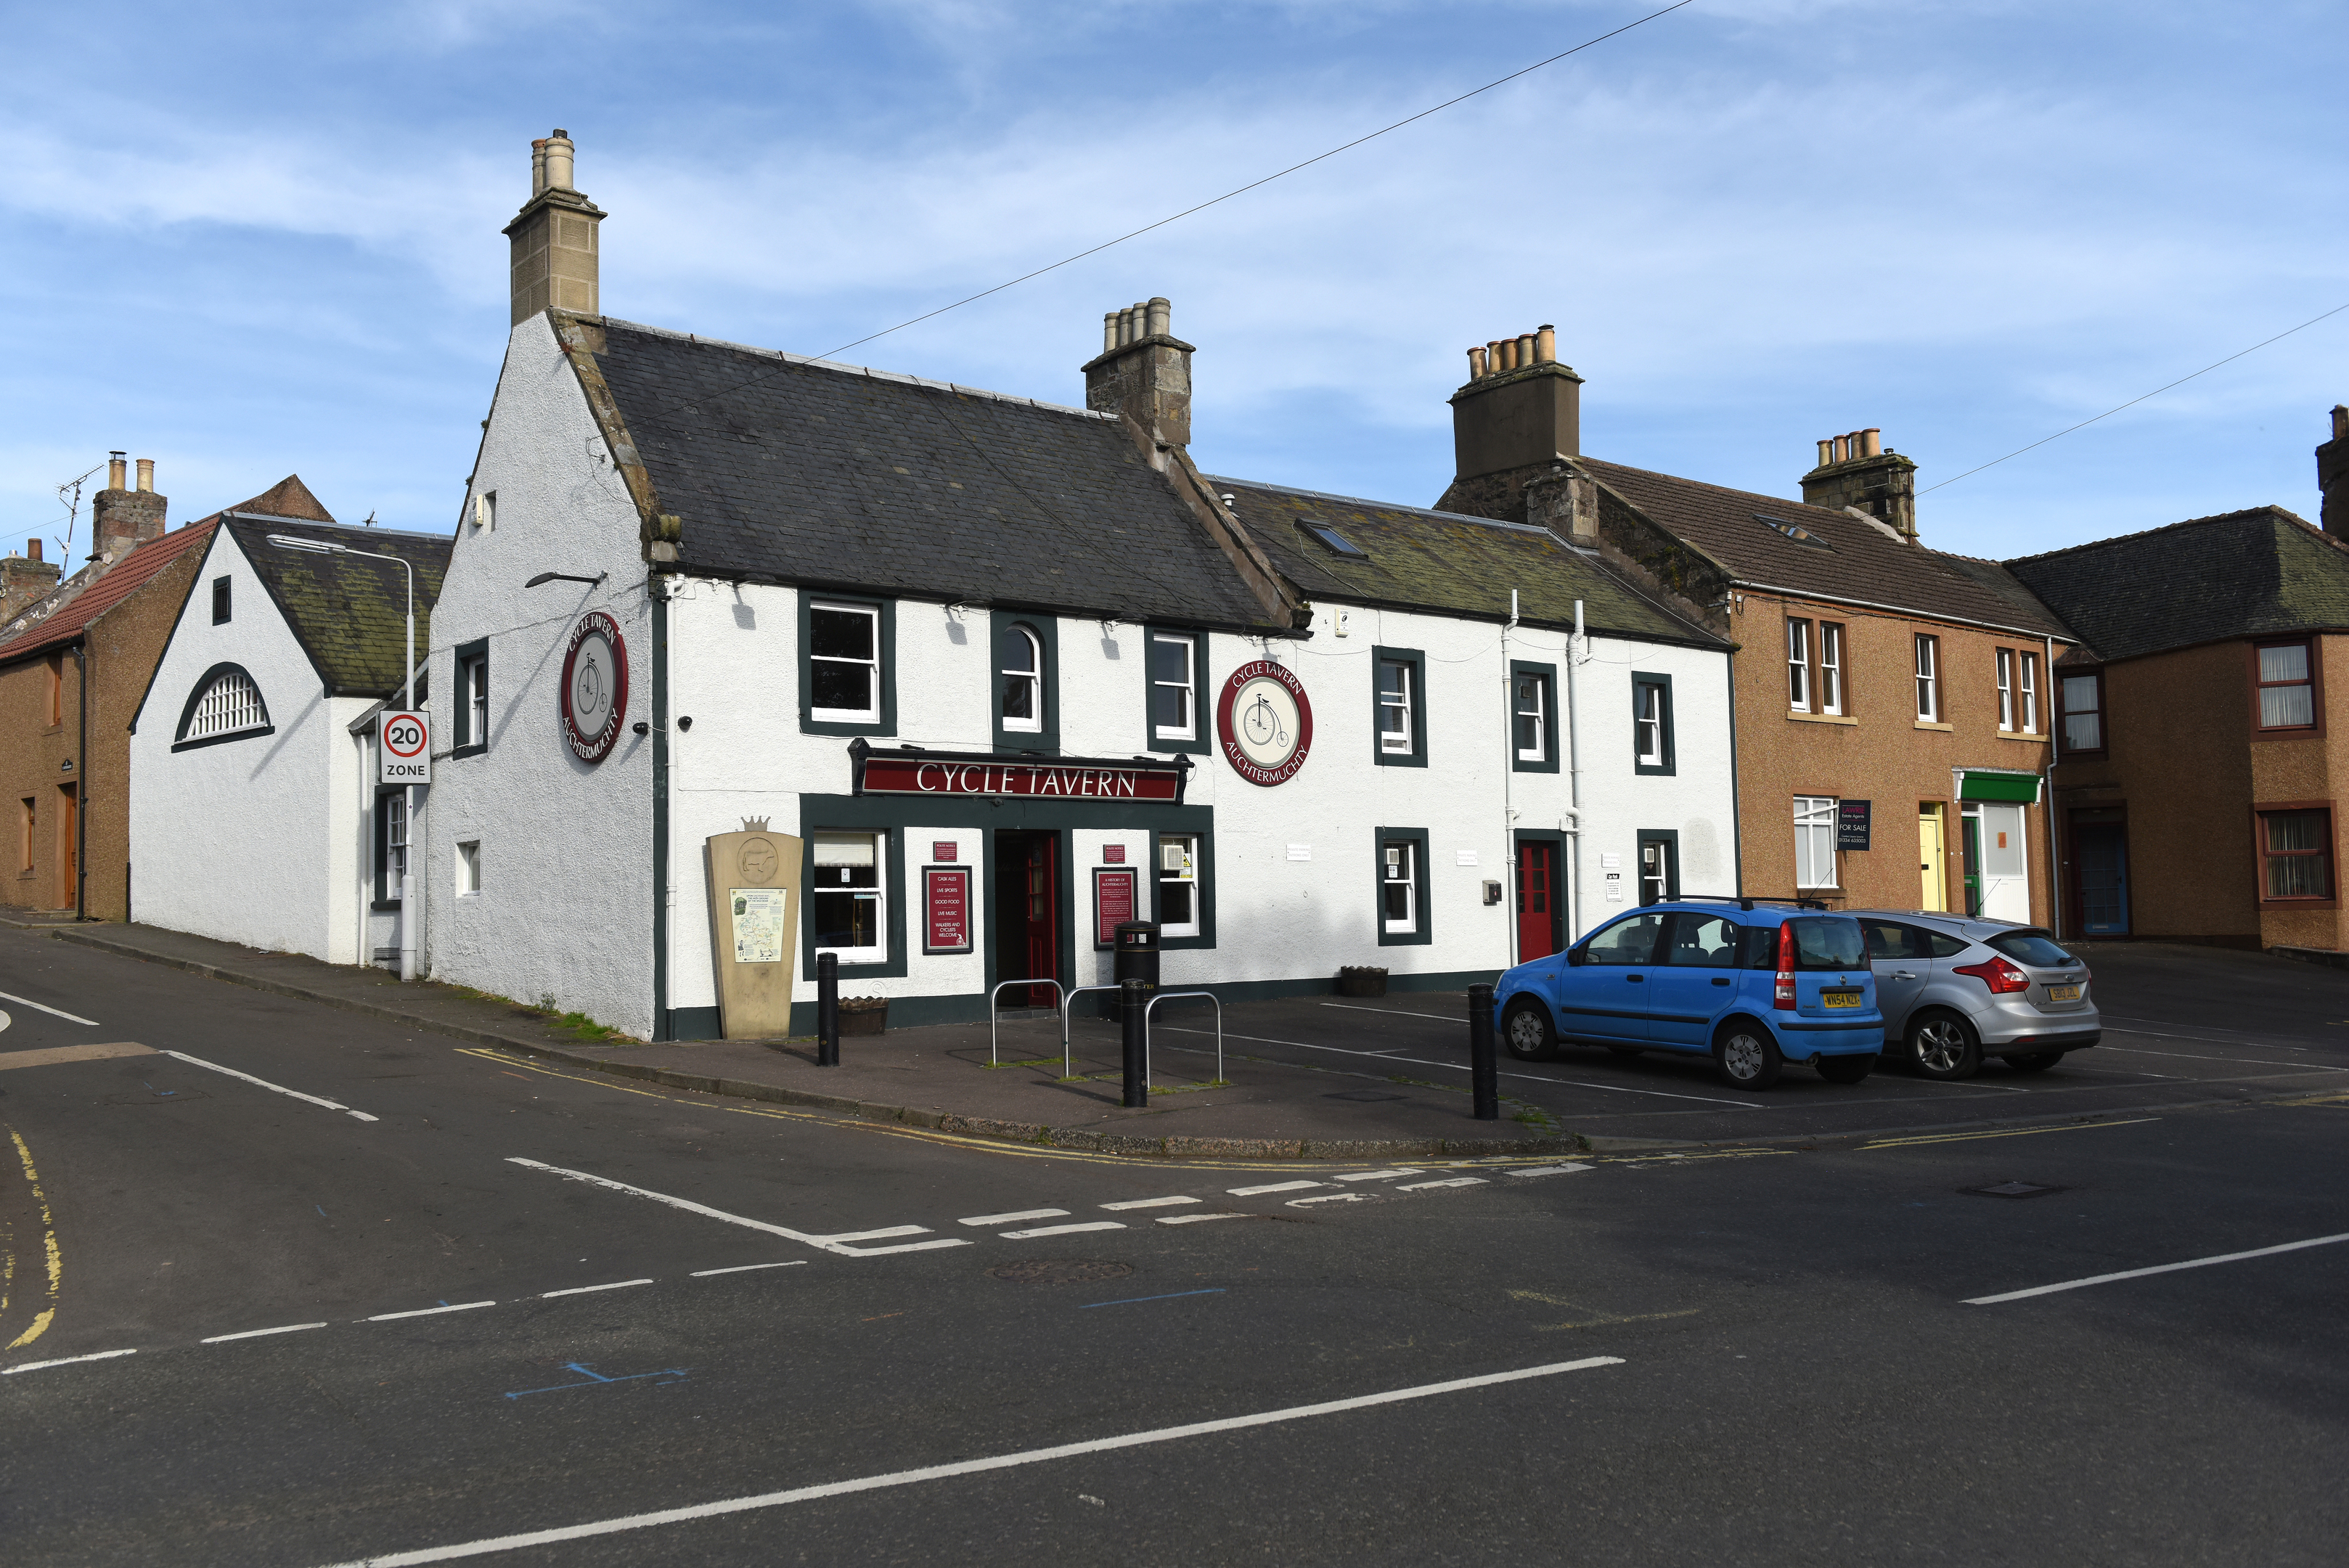 The Cycle Tavern confirmed there had been no incidents on their premises.